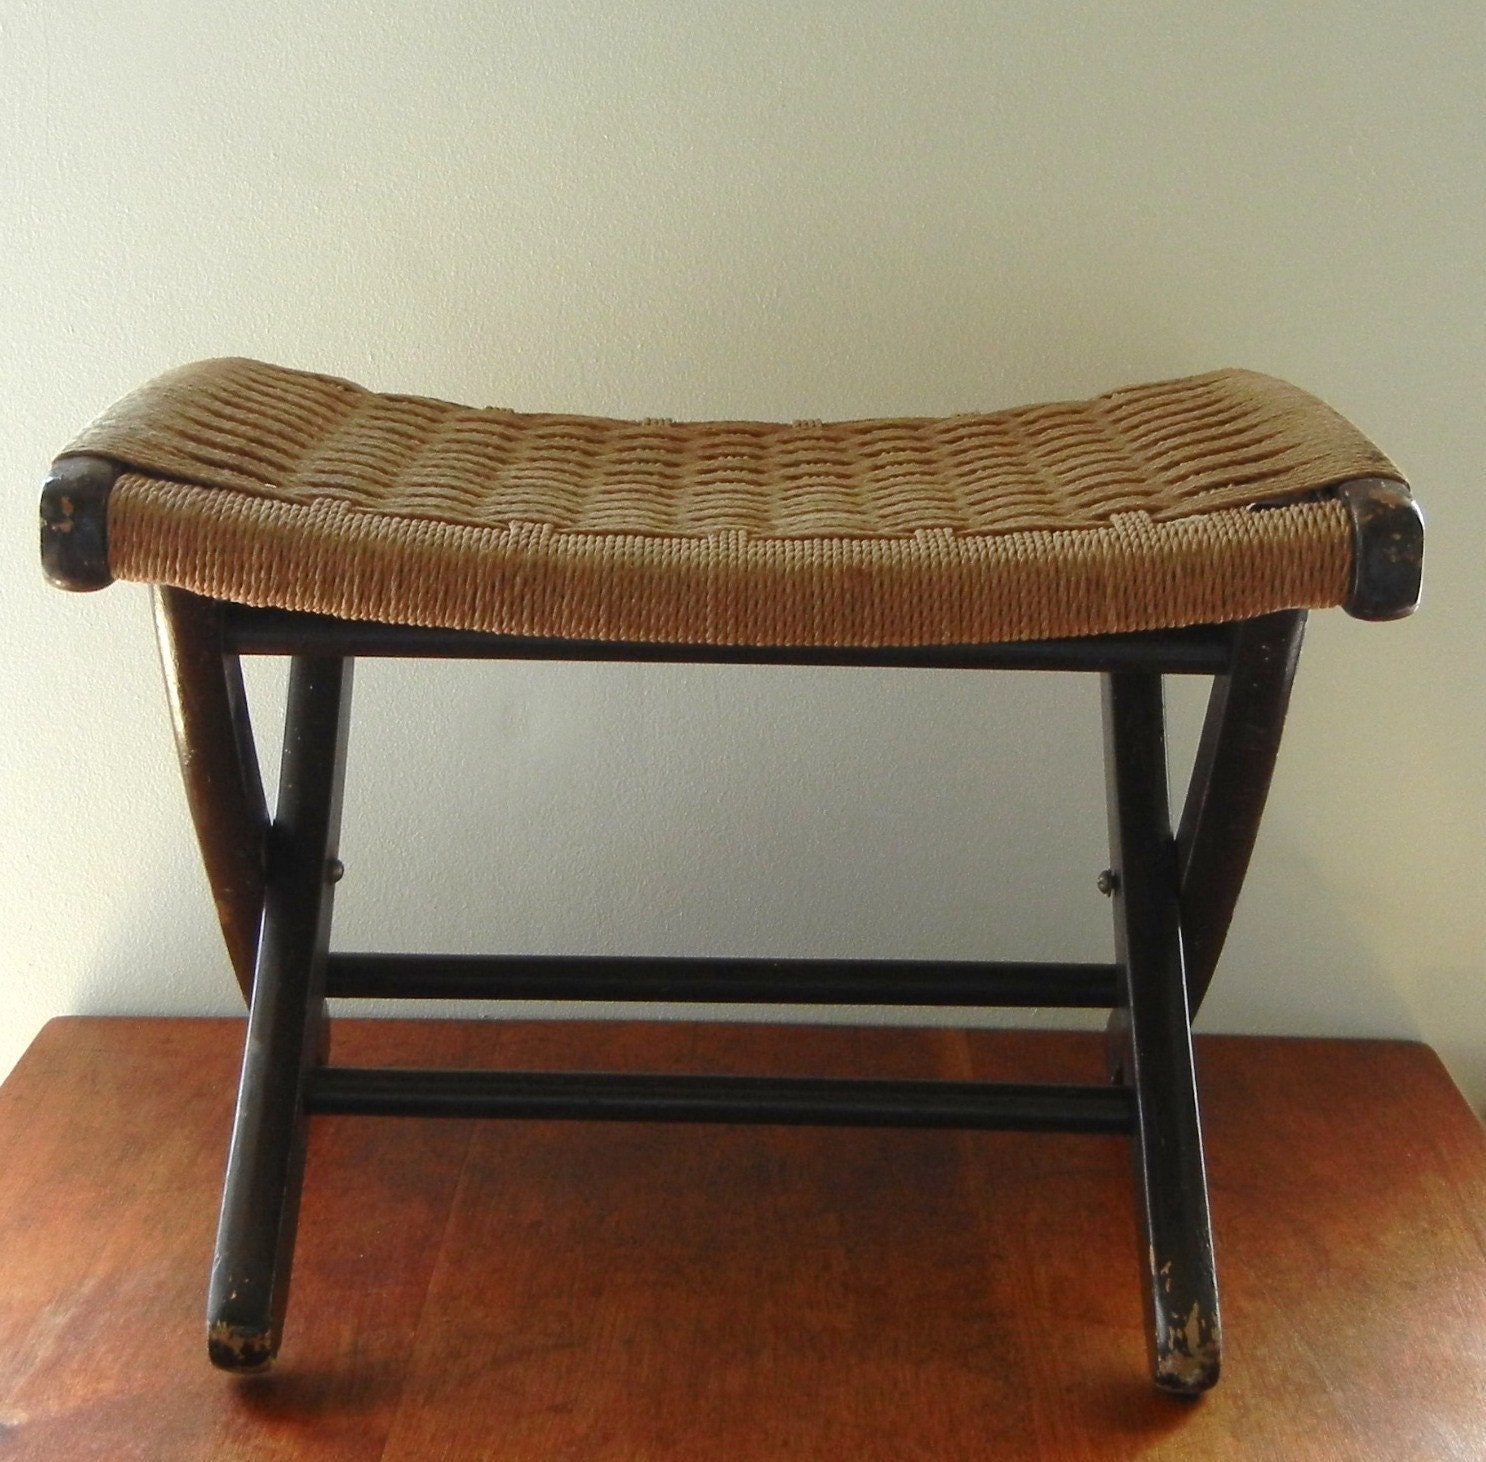 Antique Woven Foot Stool